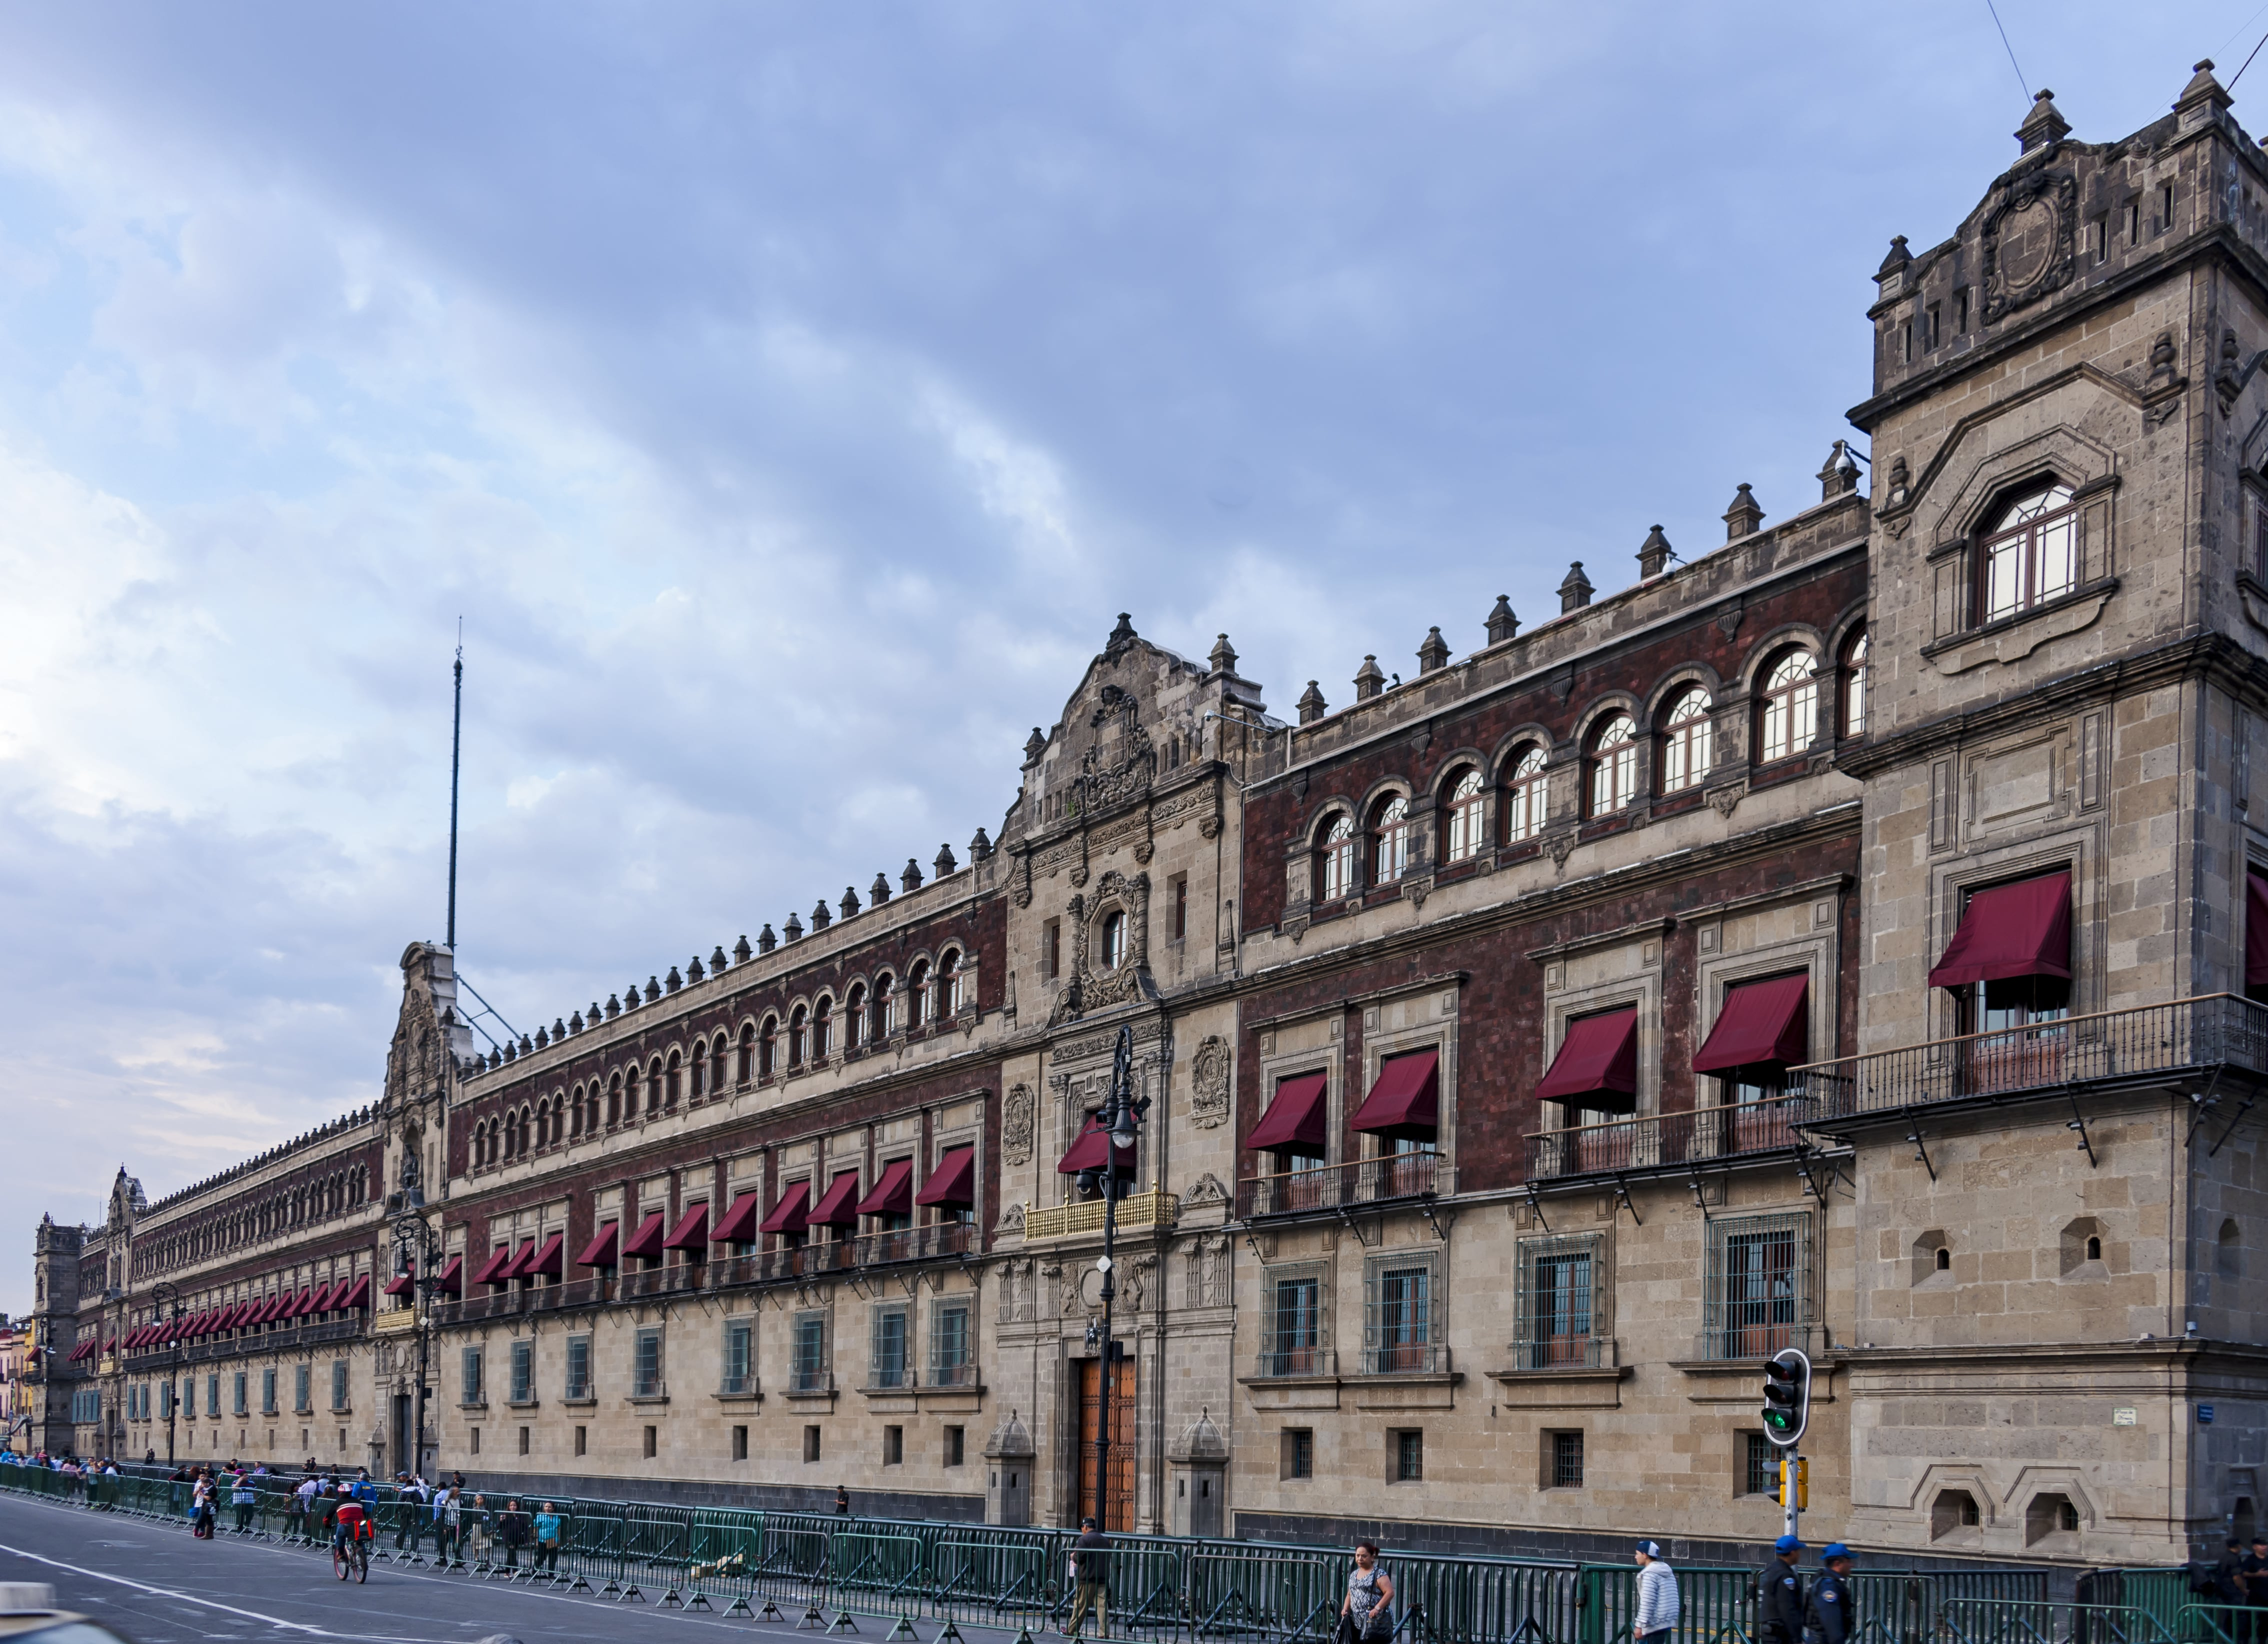 If you love politics and history, visiting the Palacio Nacional is a great thing to do in Mexico CIty